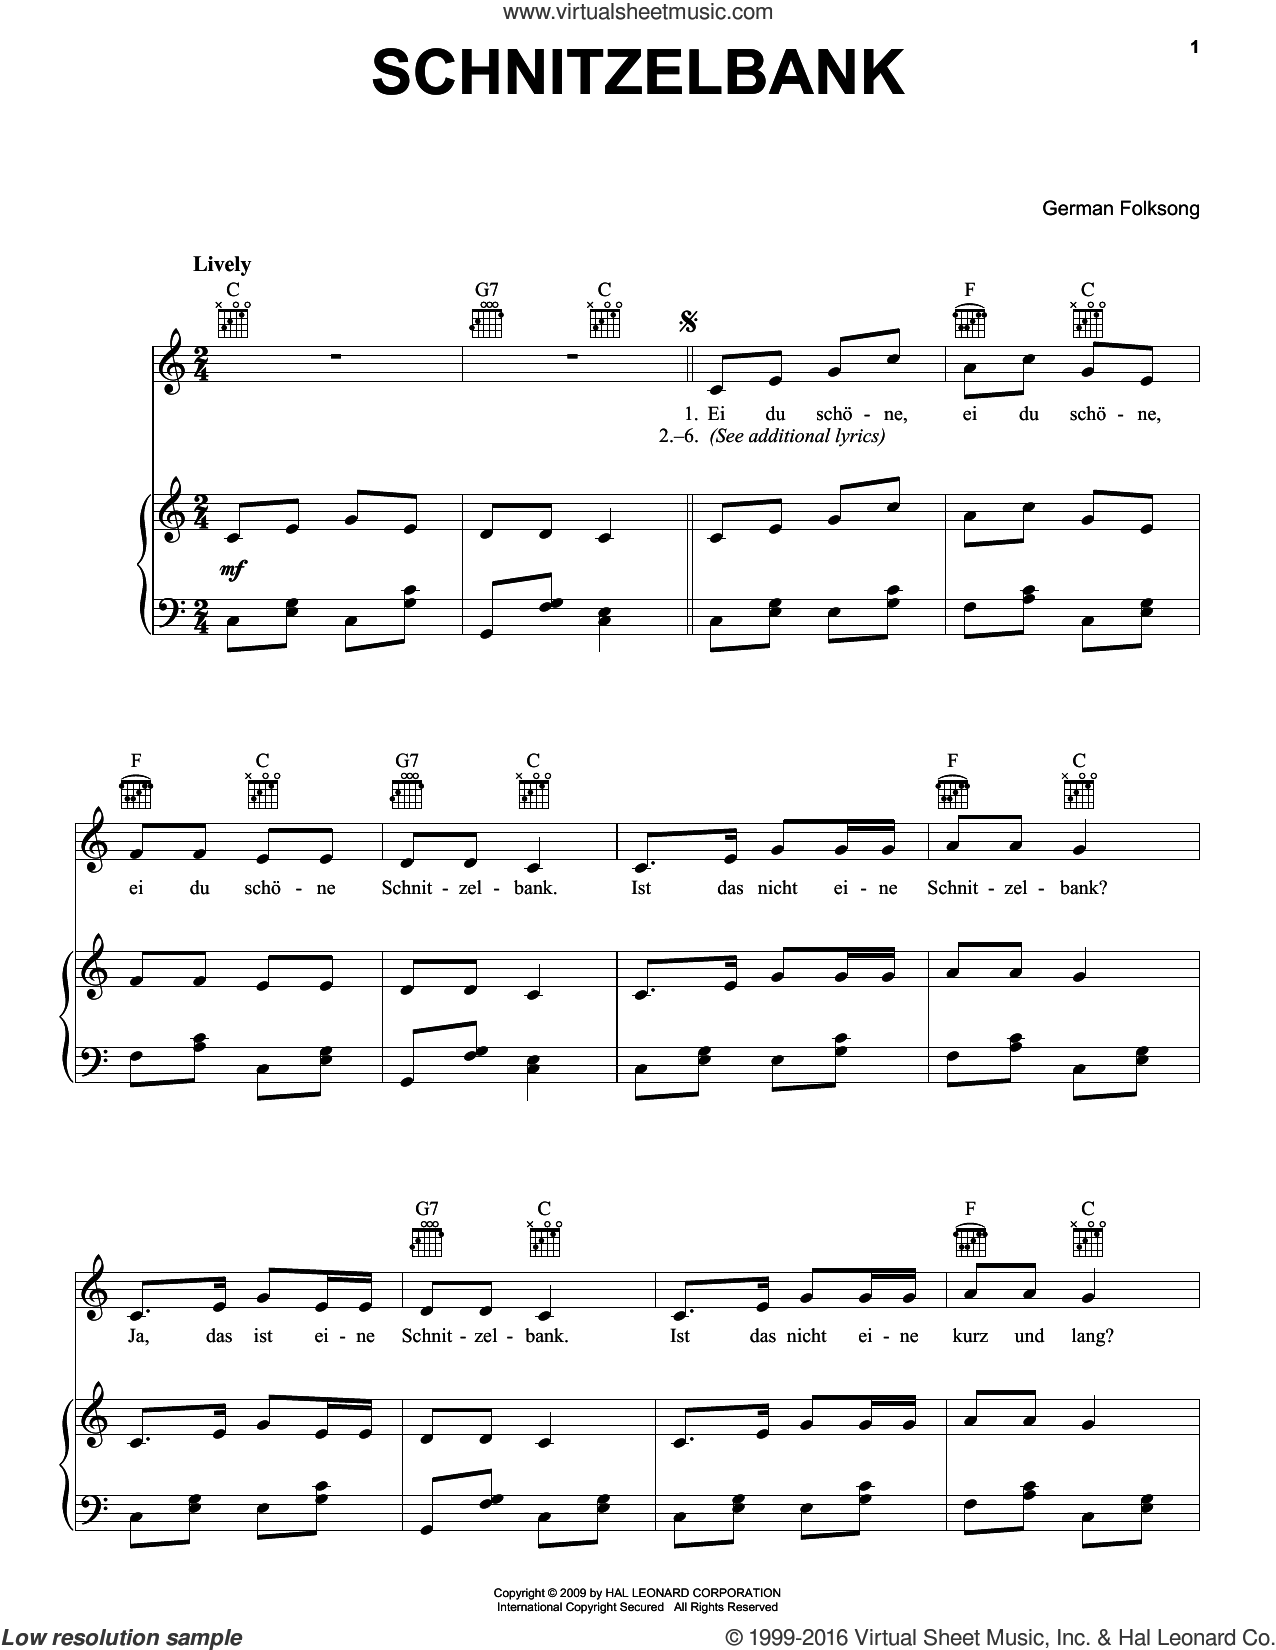 Schnitzelbank sheet music for voice, piano or guitar, intermediate skill level